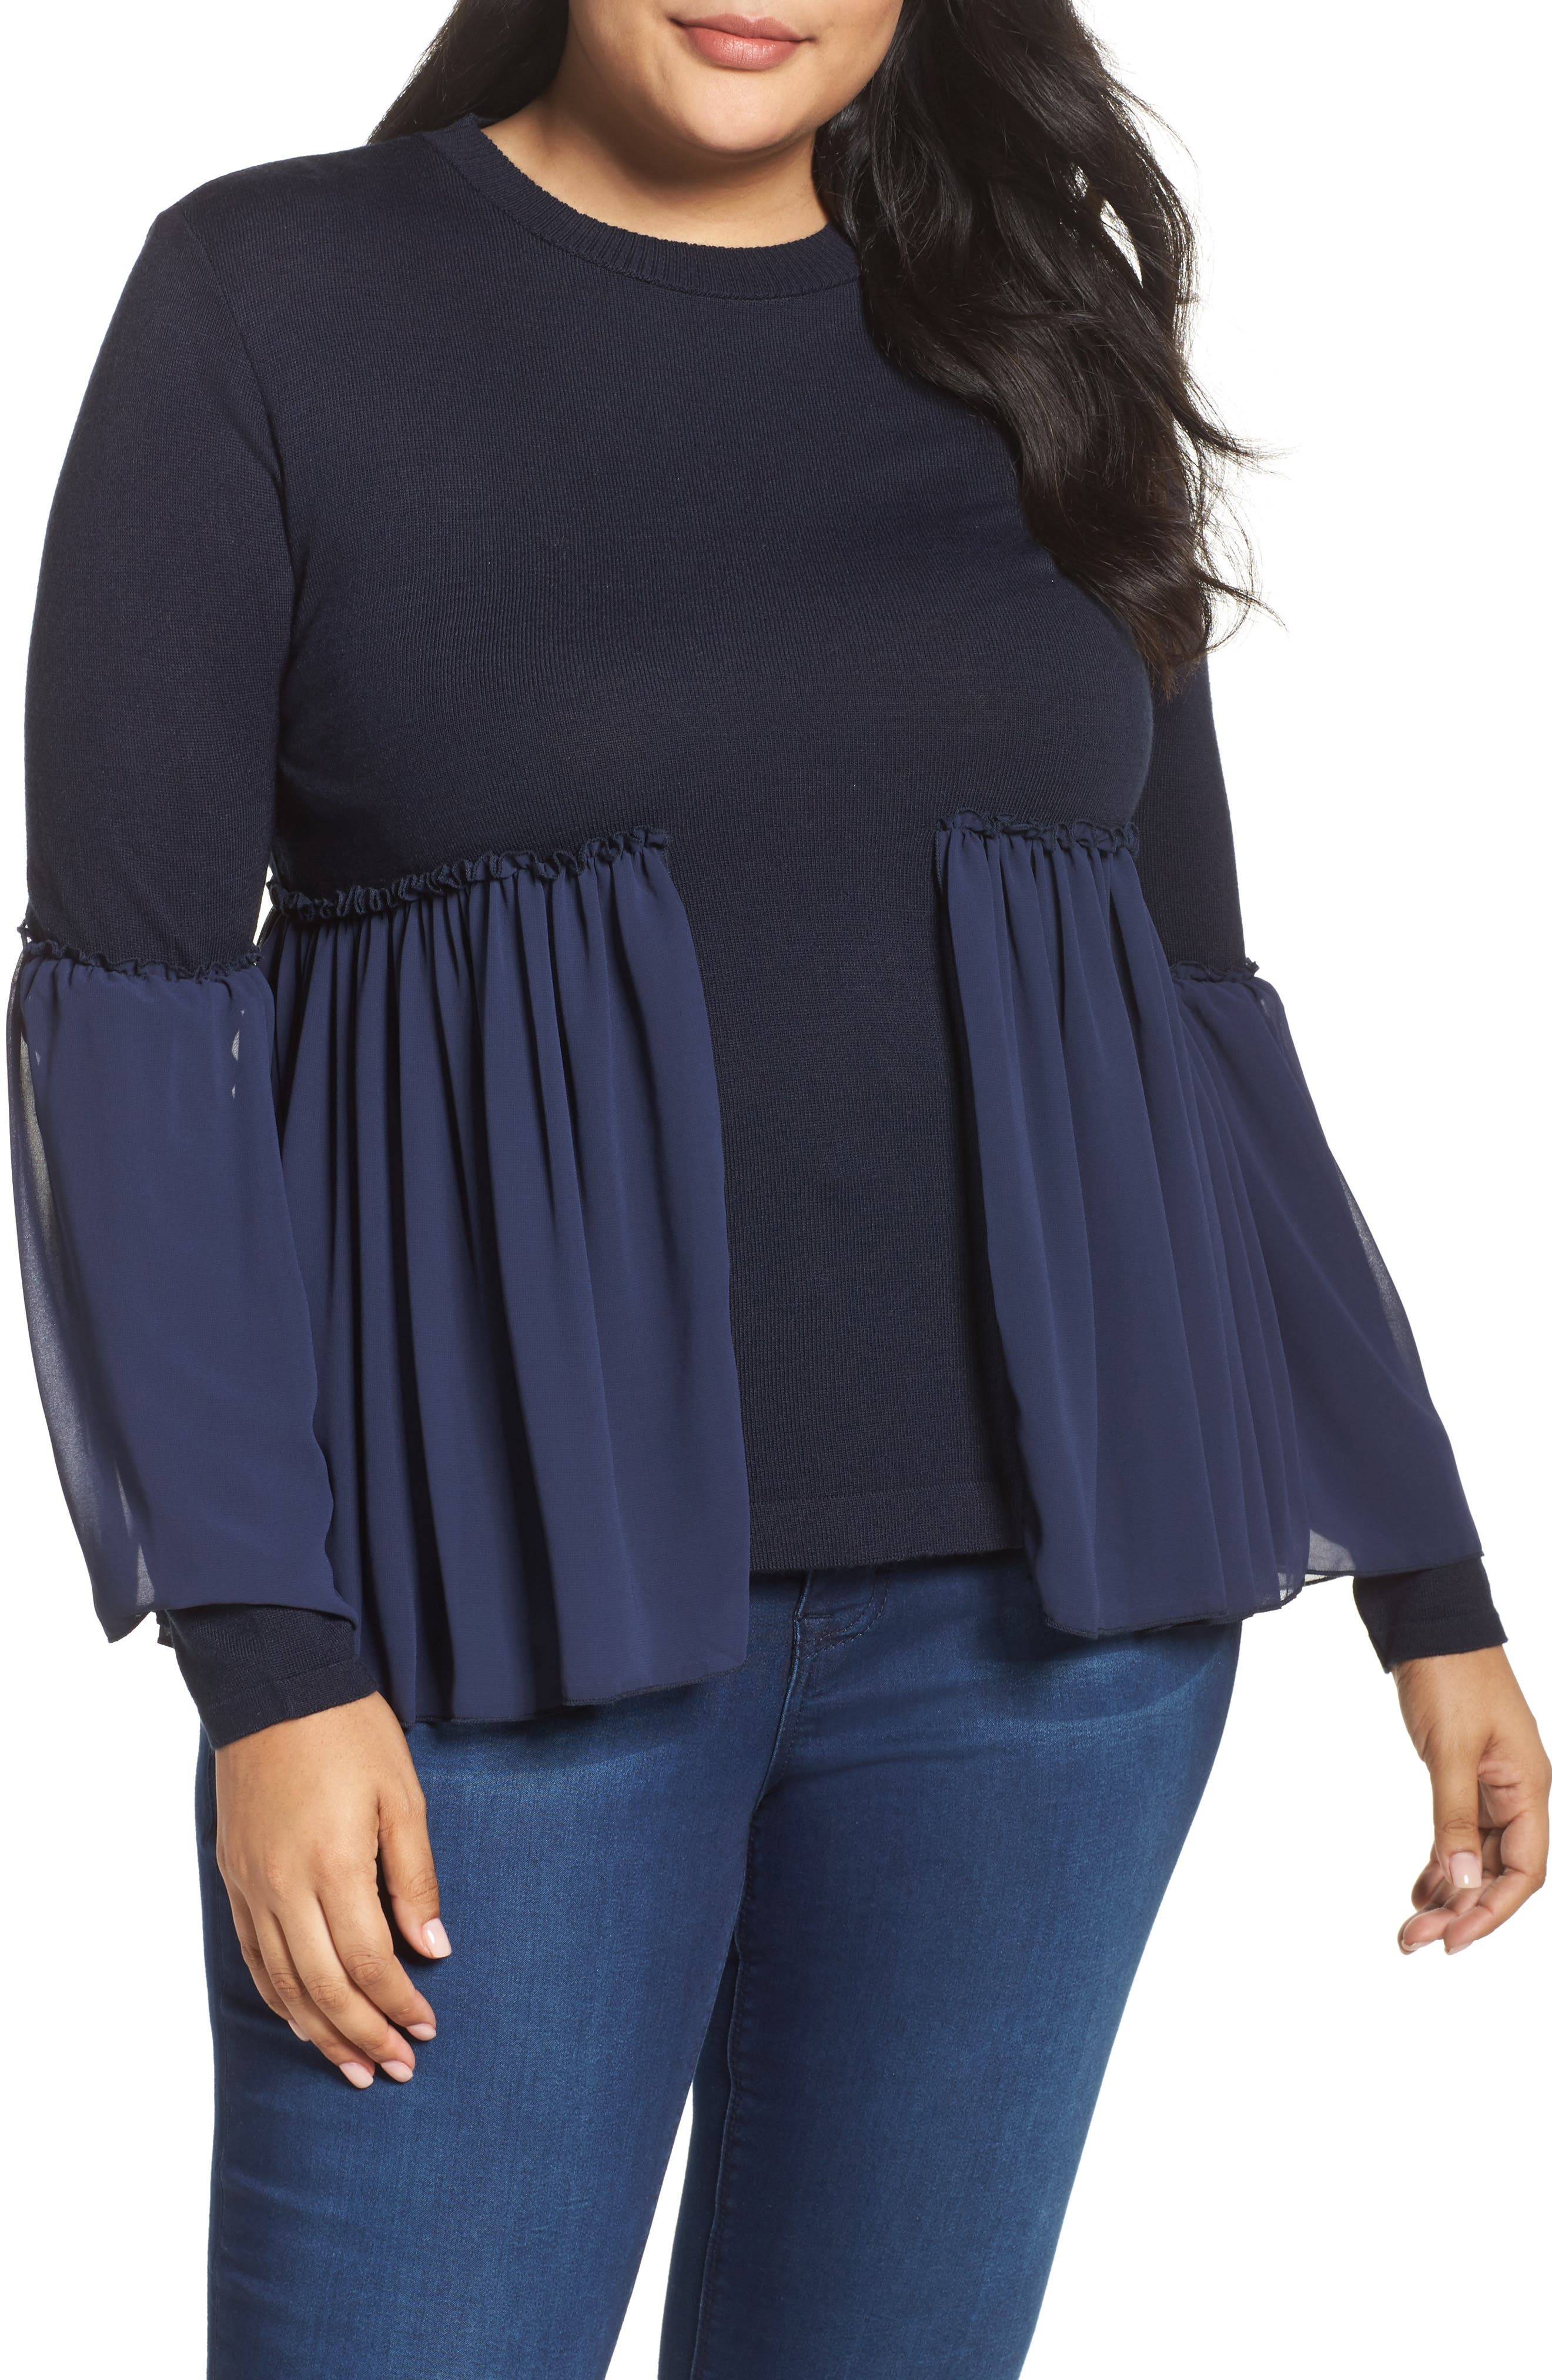 Main Image - LOST INK Smocked Chiffon Contrast Sweater (Plus Size)